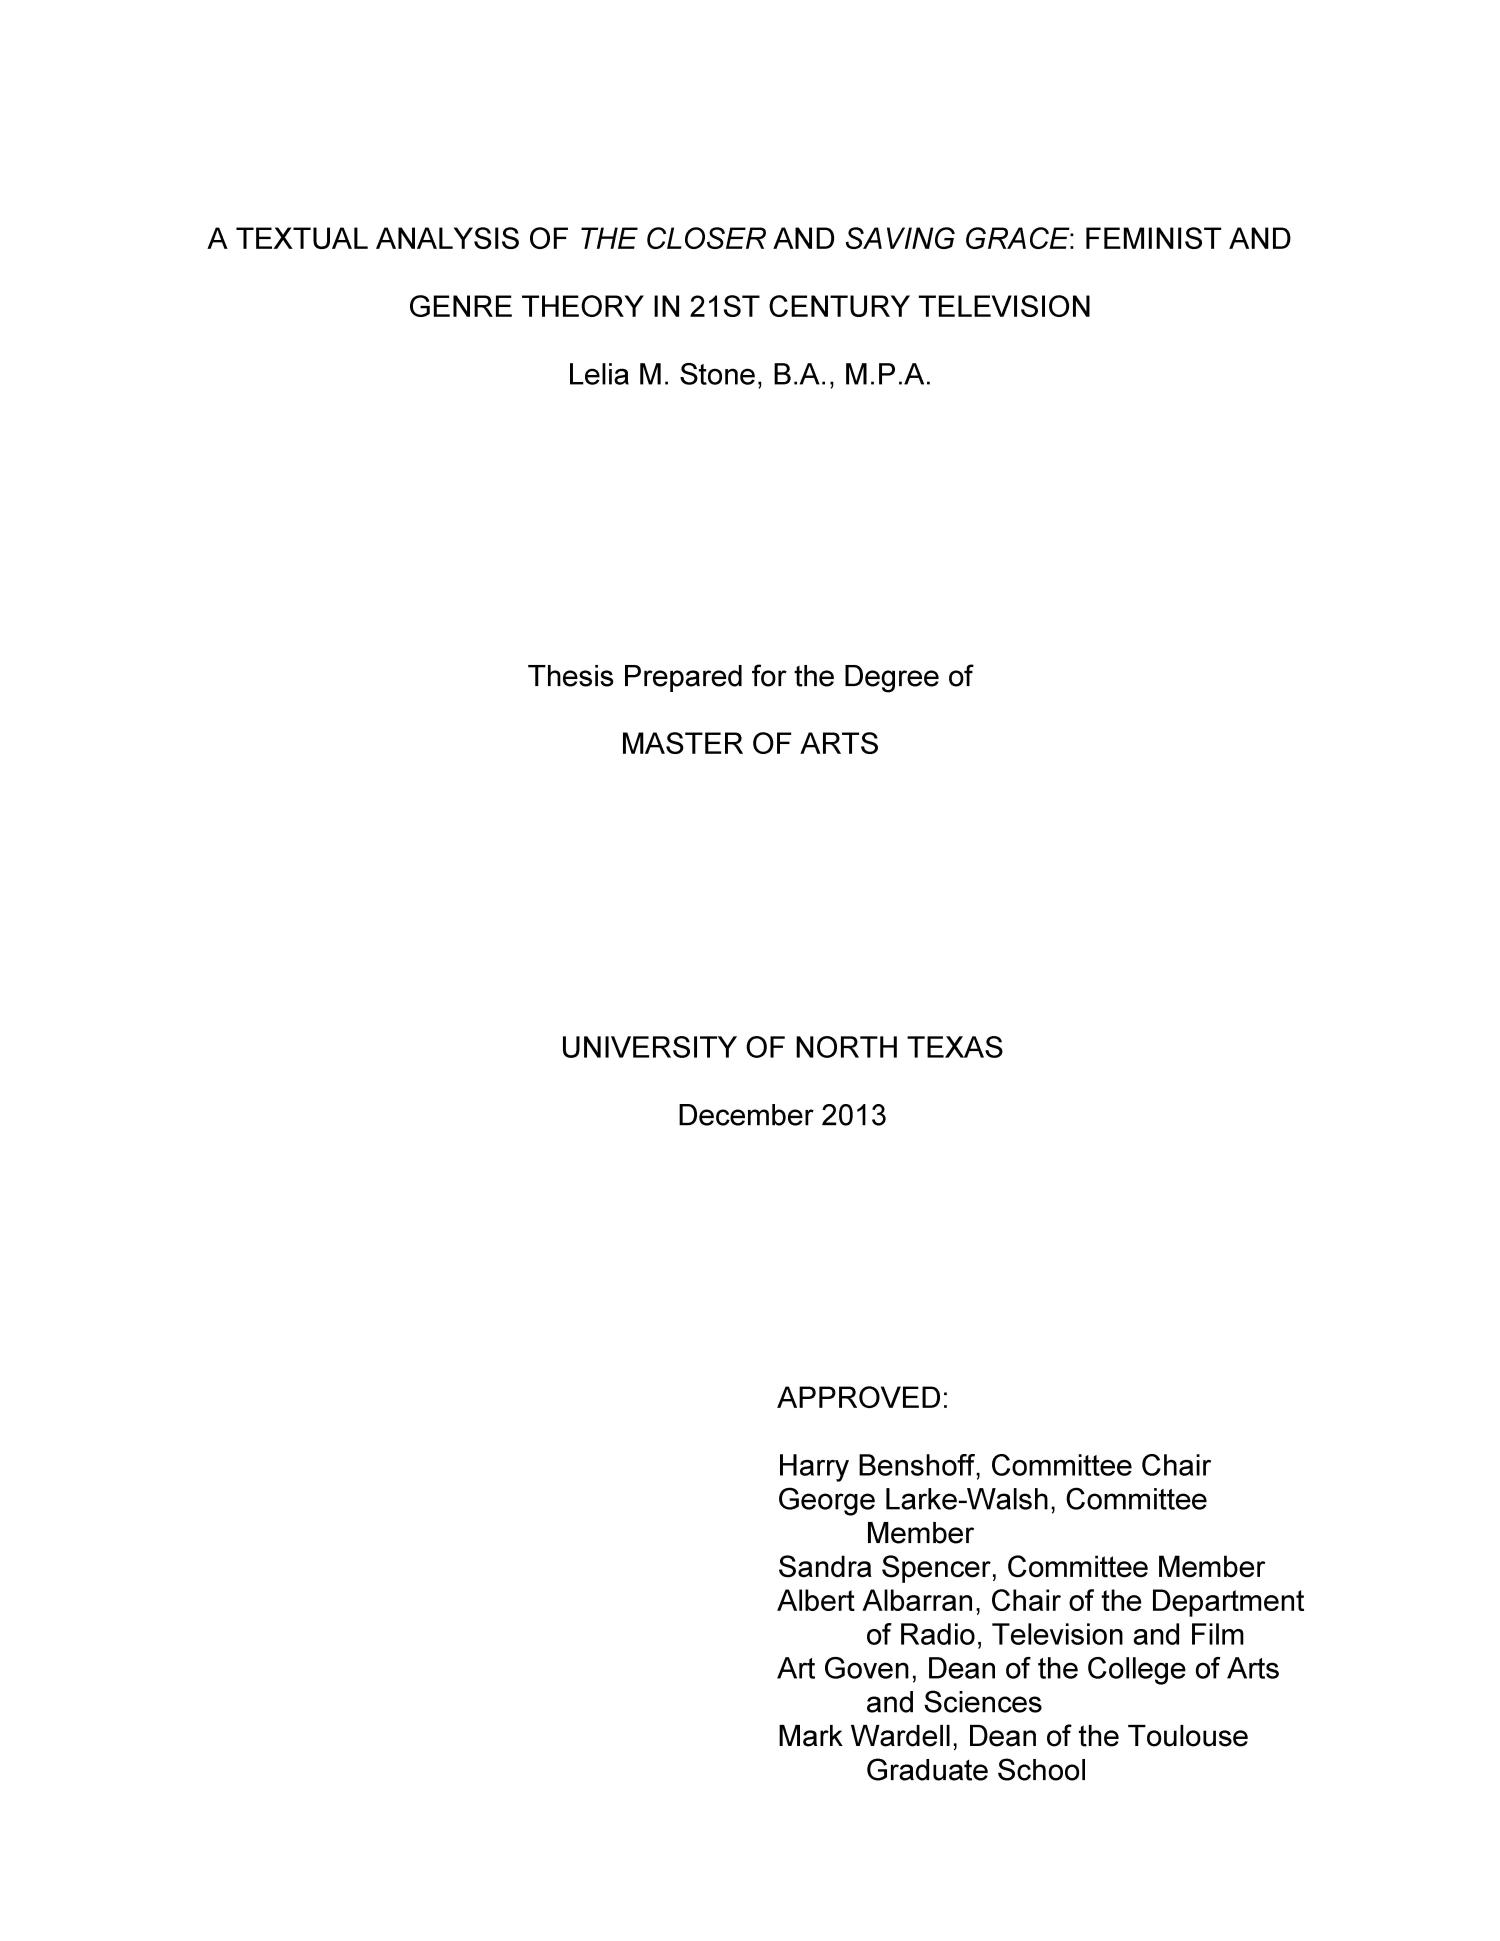 A Textual Analysis of the Closer and Saving Grace: Feminist and Genre Theory in 21St Century Television                                                                                                      Title Page